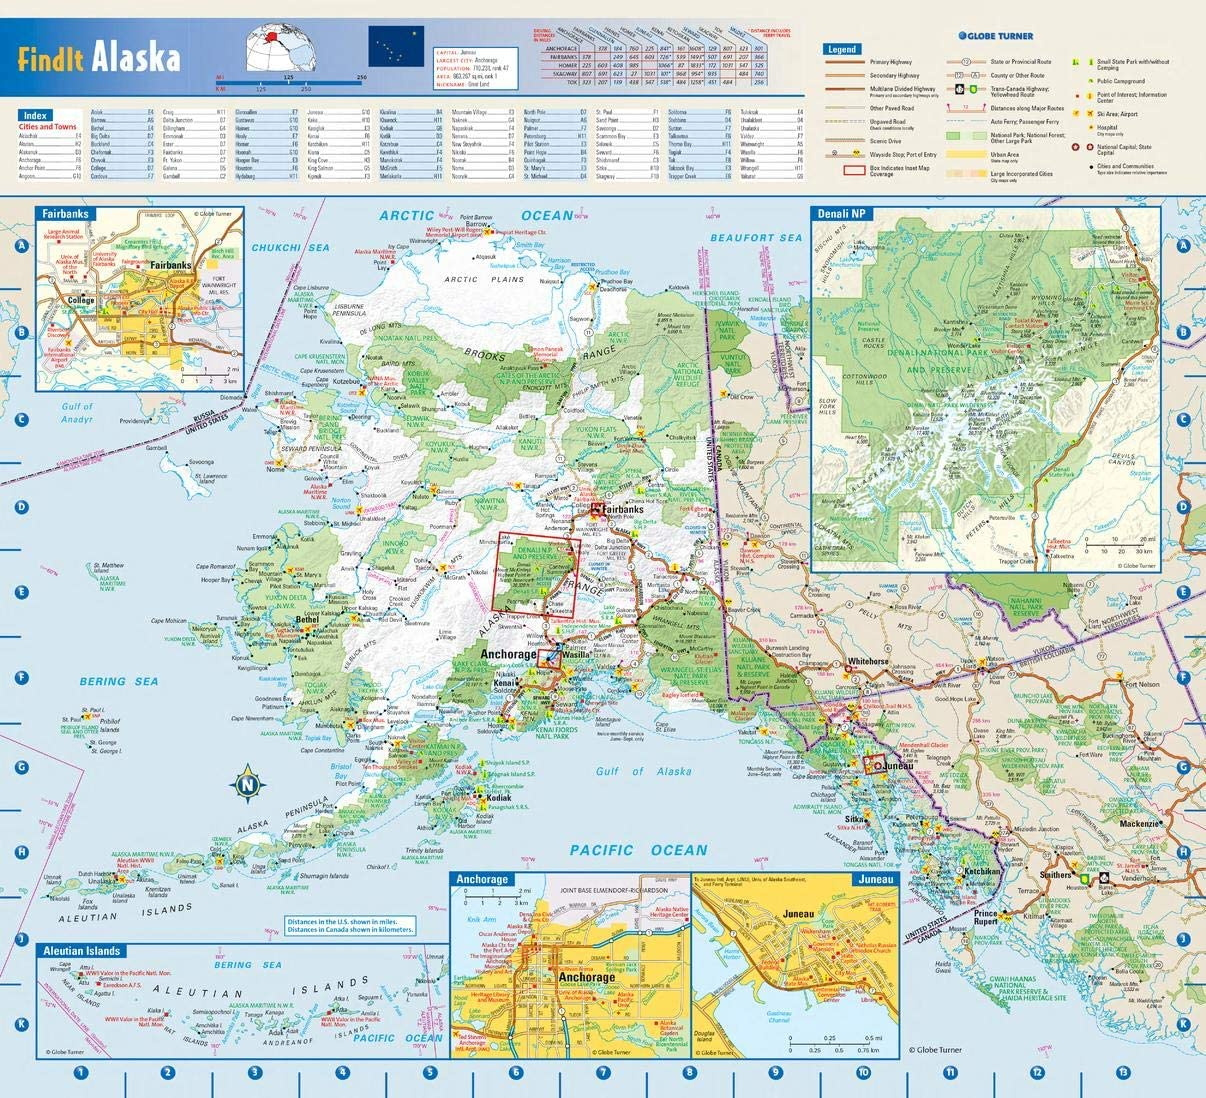 Alaska State Wall Free shipping anywhere in the nation Map - Laminated x 16.75